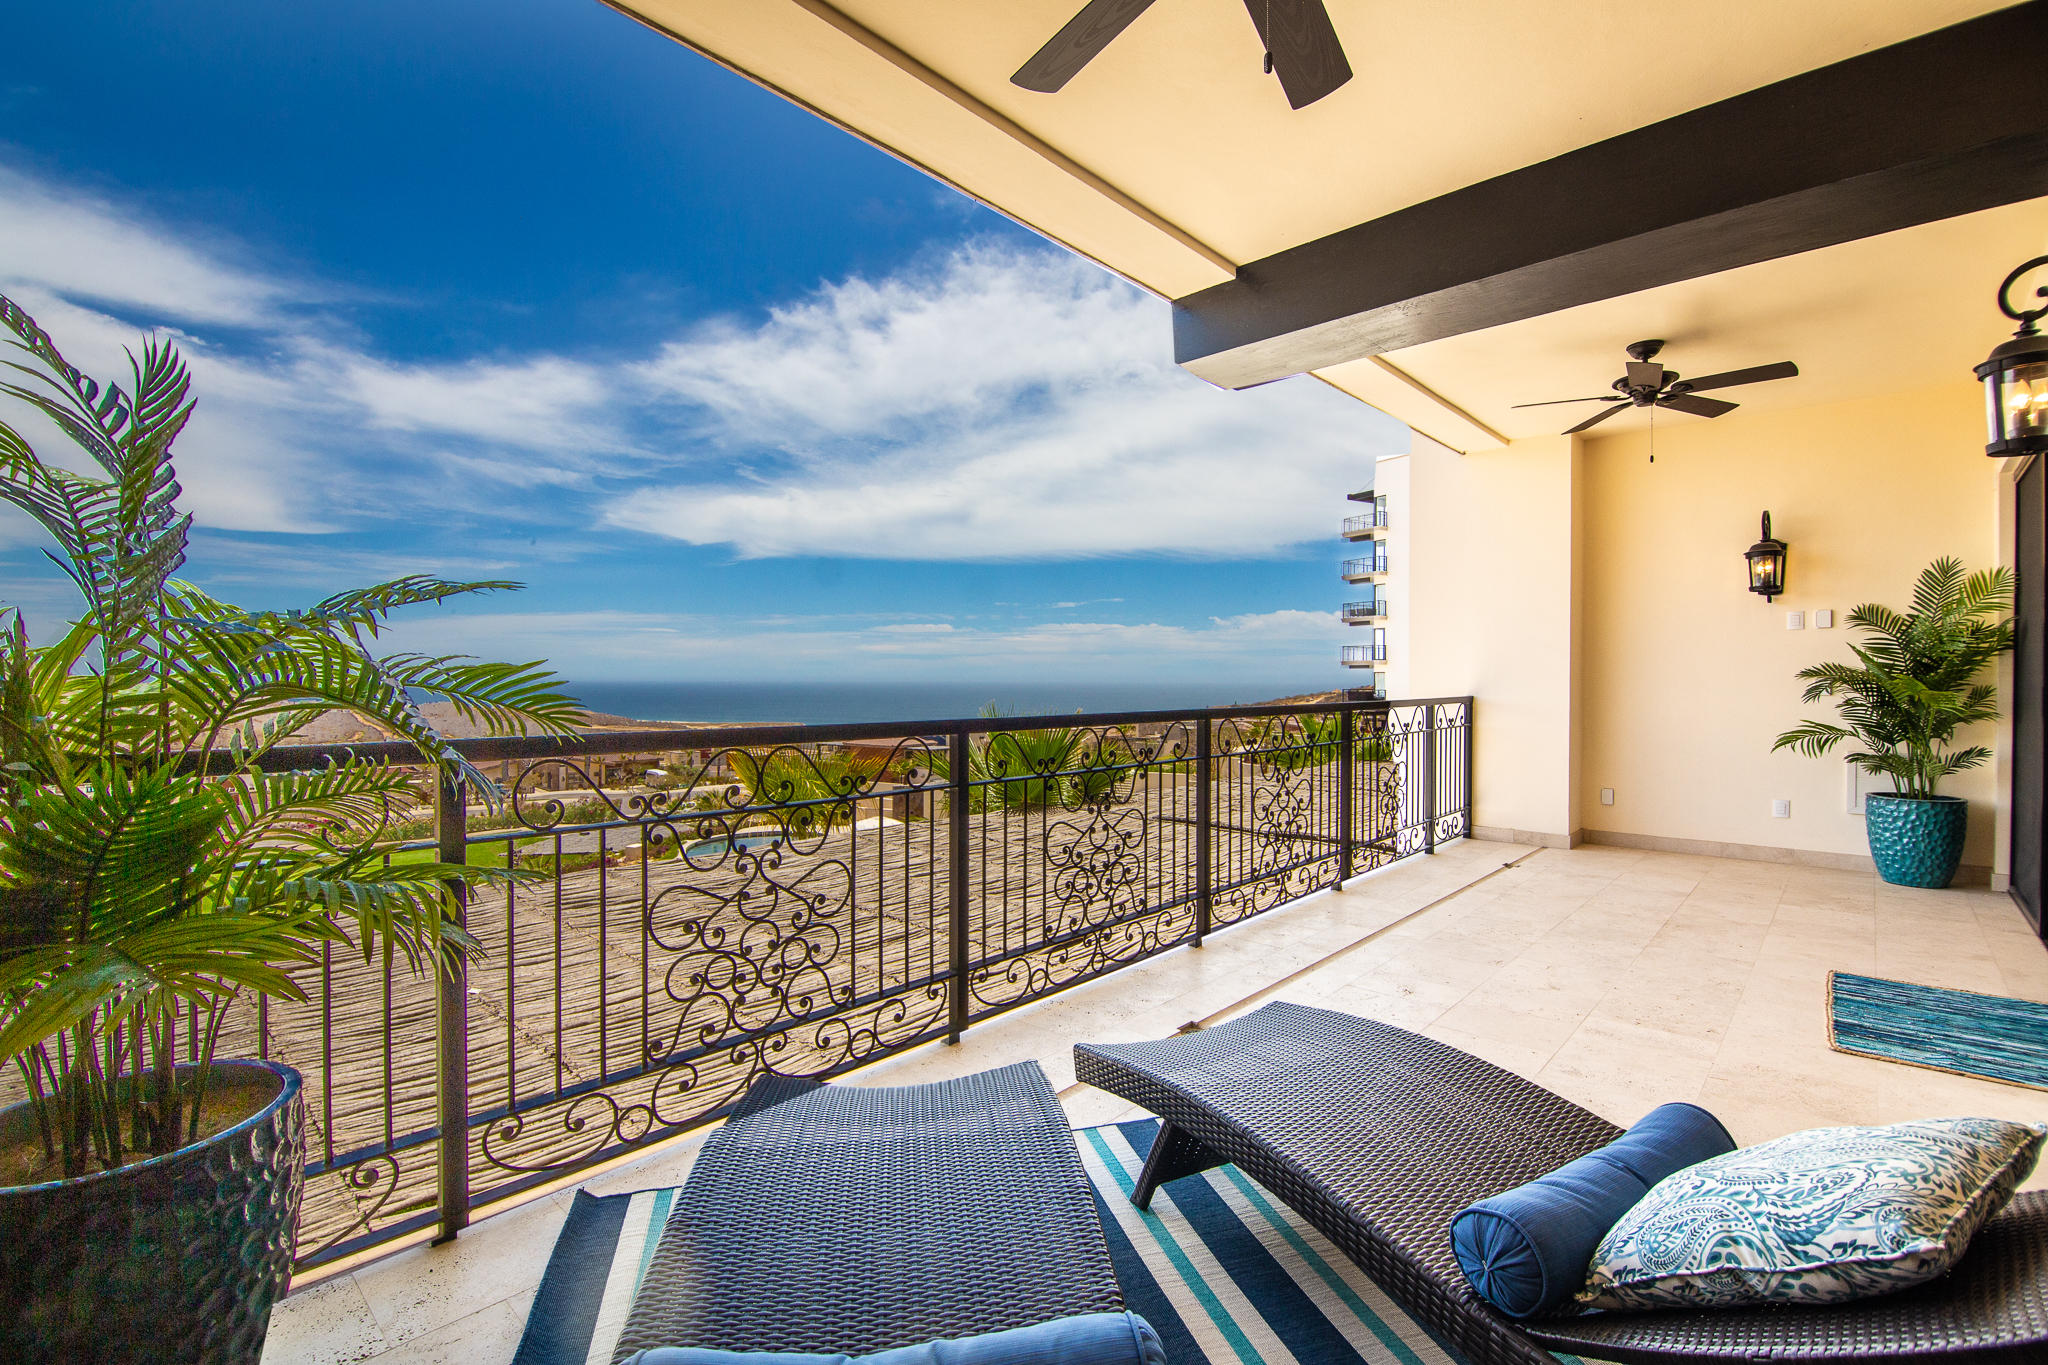 Pacific, 2 Bedrooms Bedrooms, ,2 BathroomsBathrooms,Condo,For Sale,Copala at Quivira,17-1408